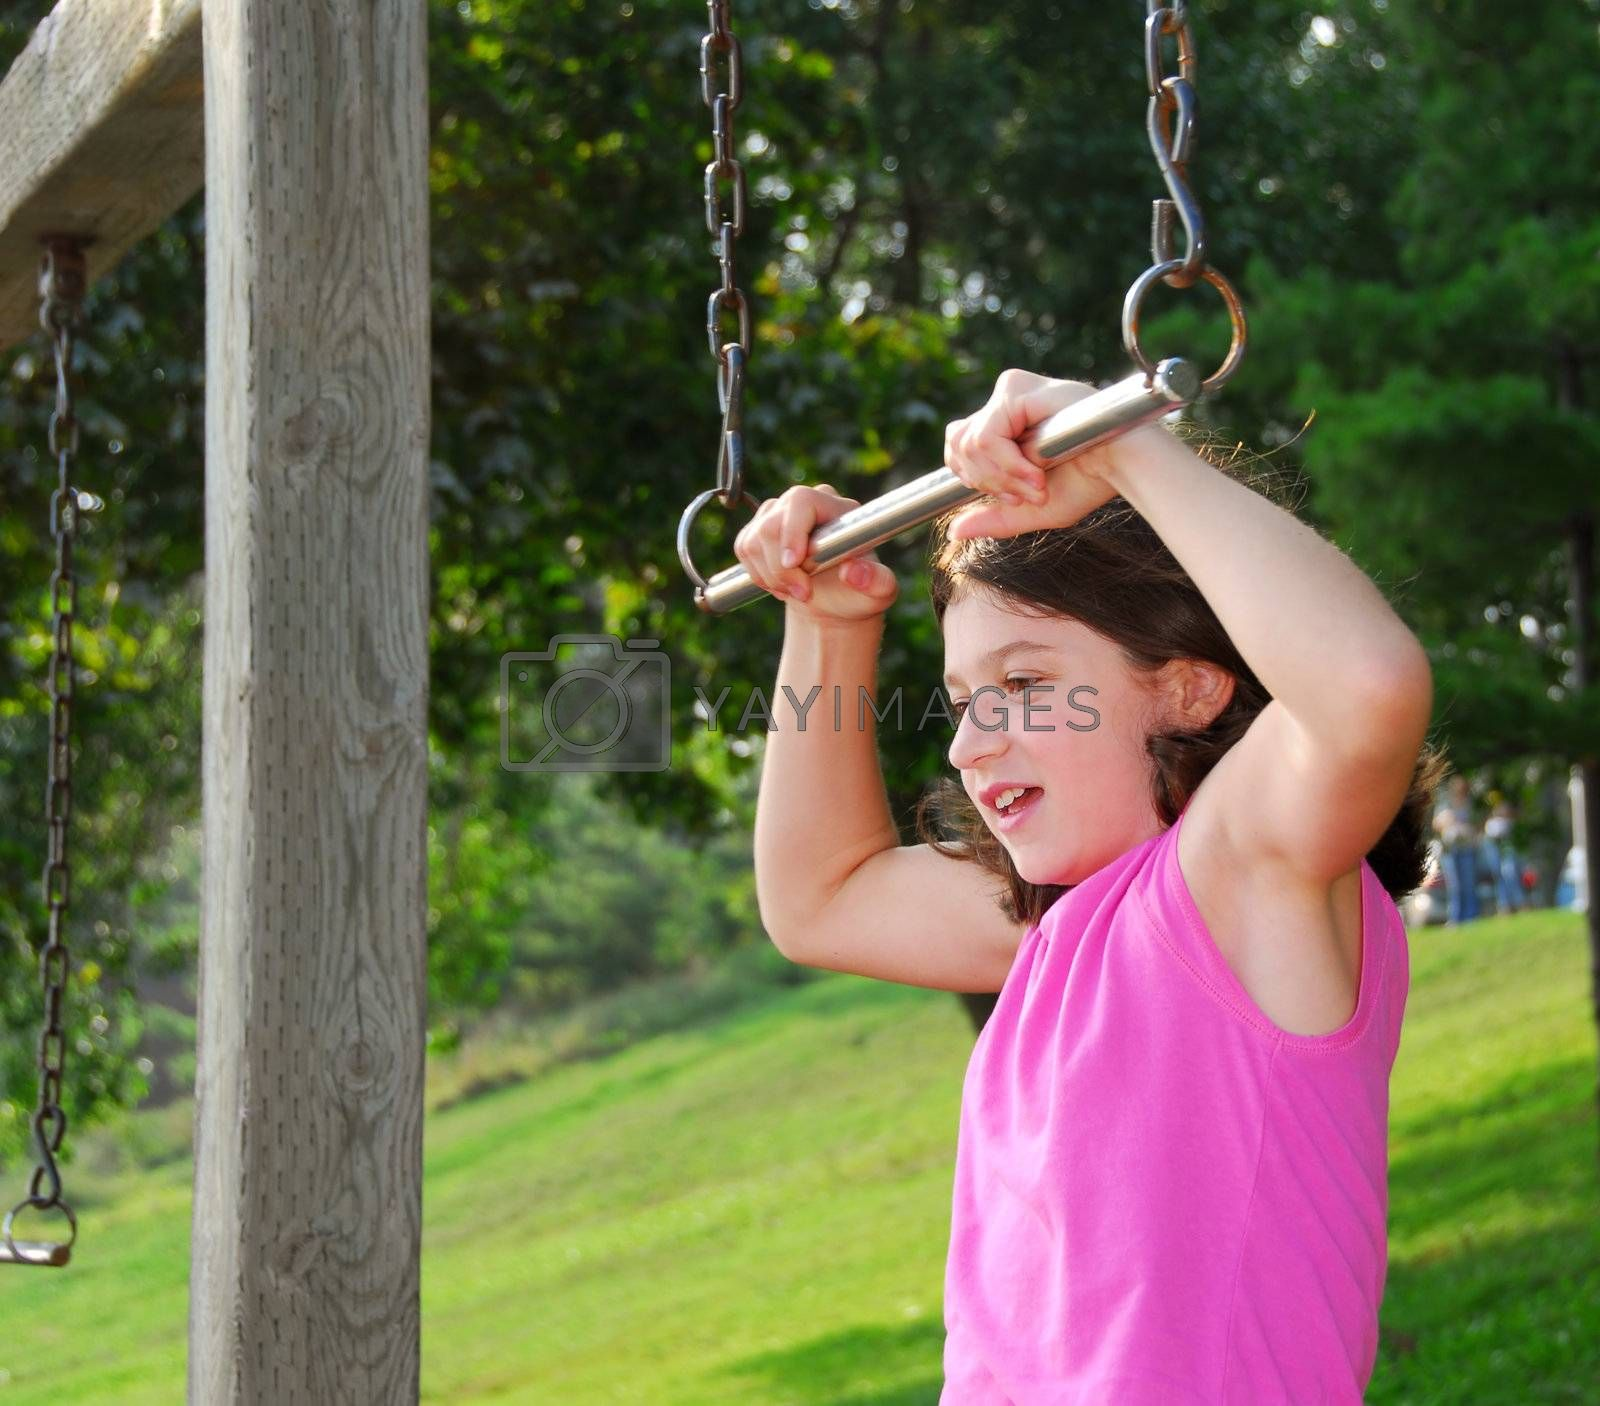 Portrait of a young girl playing on a playground at summertime